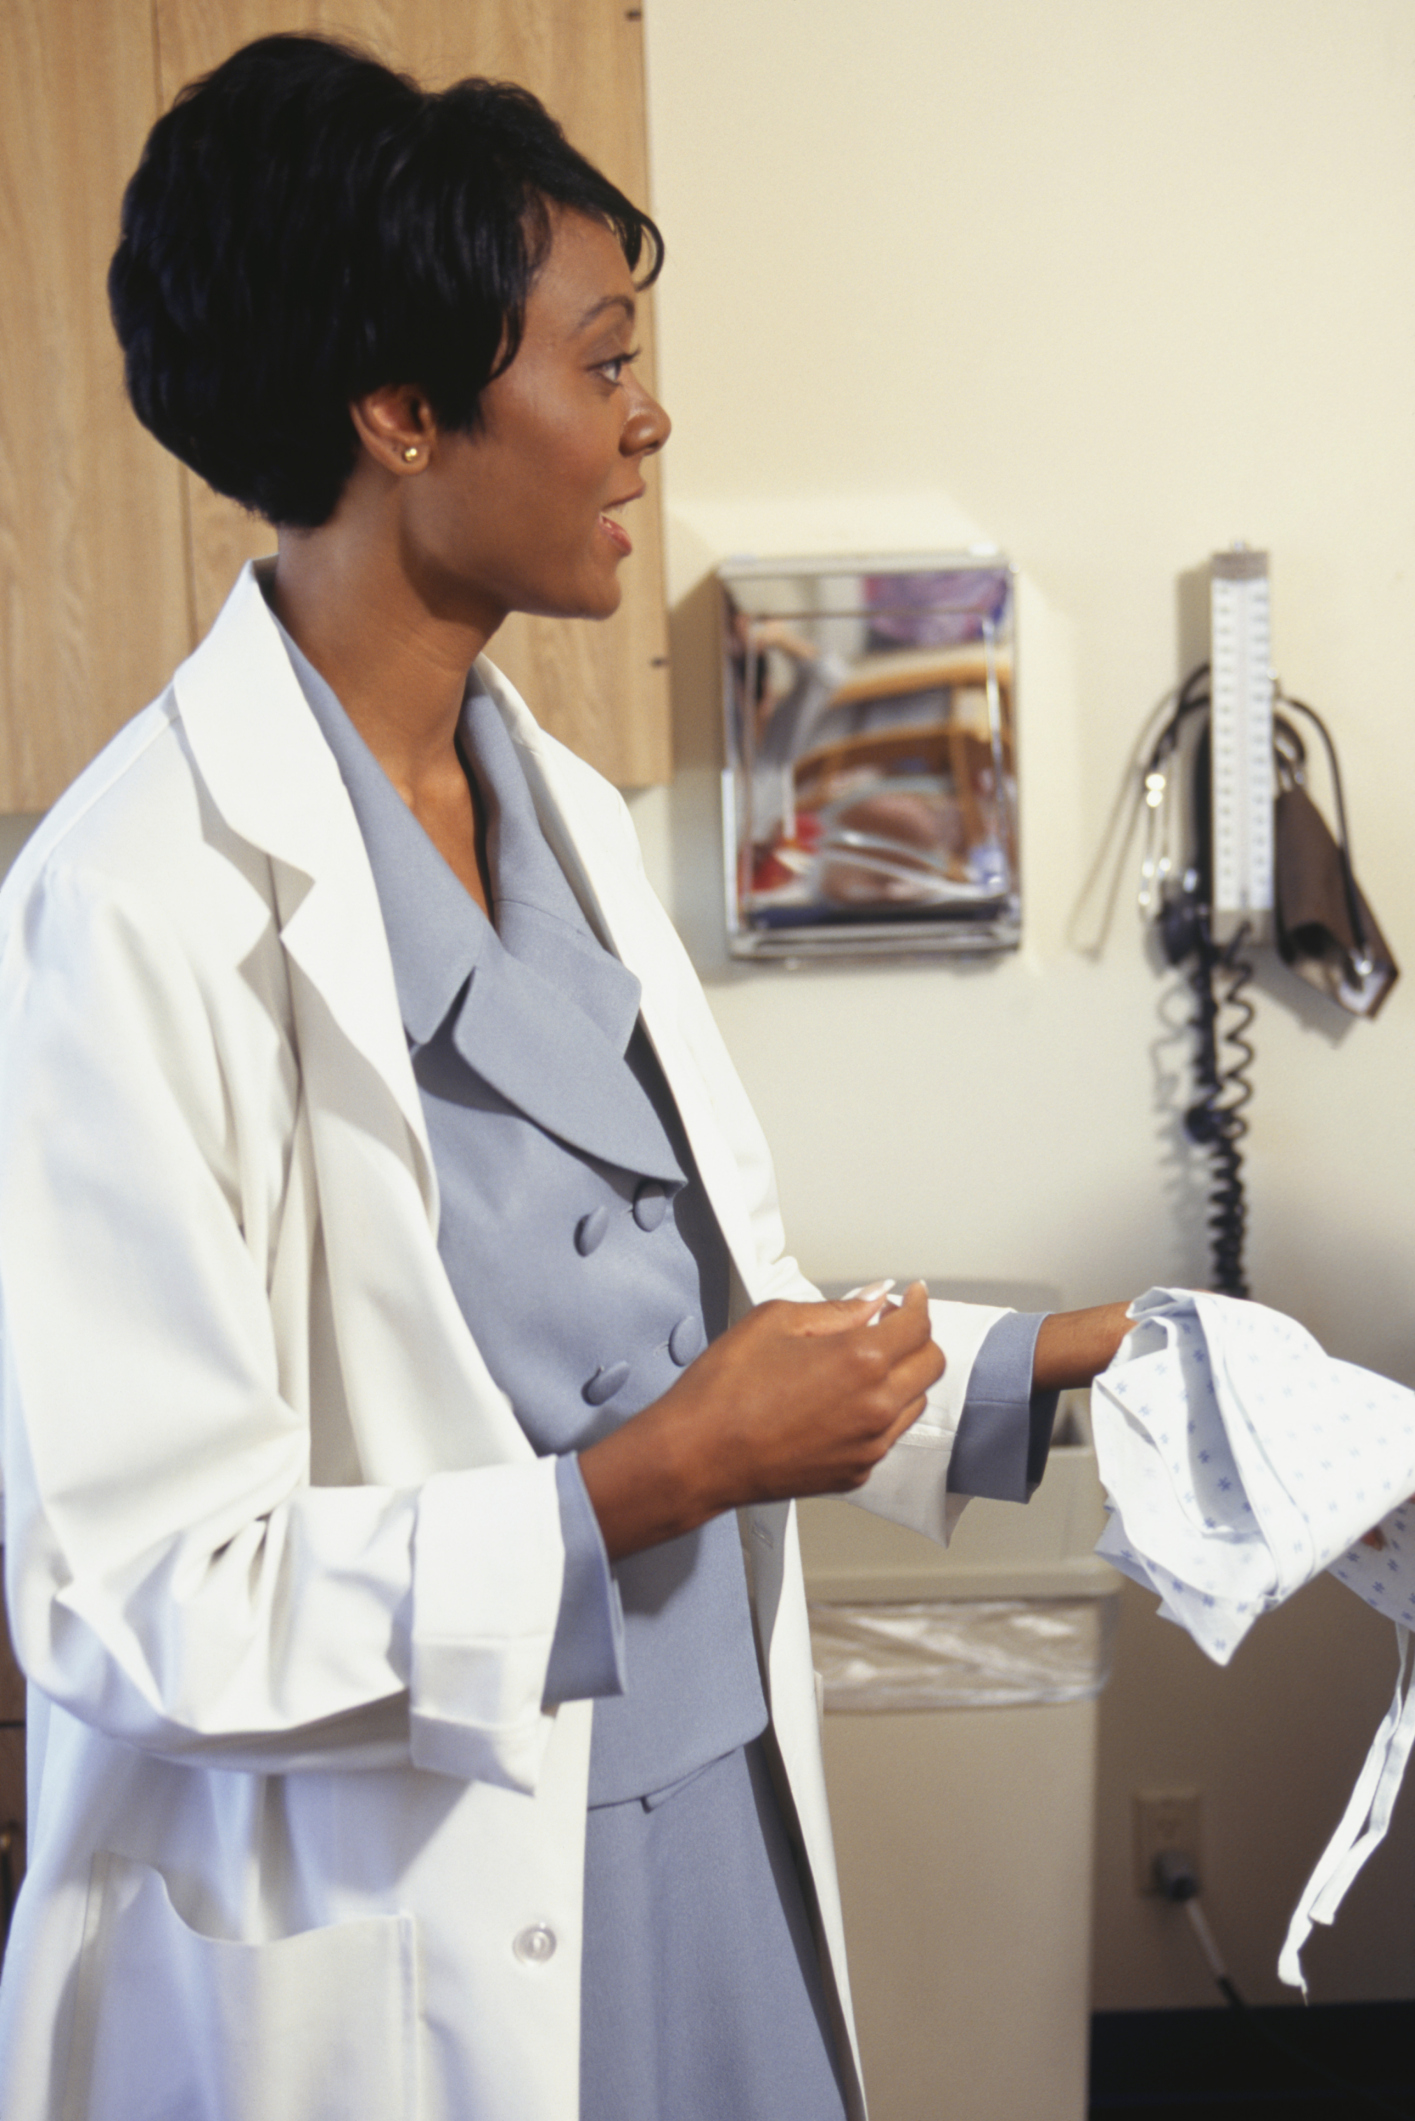 Classes Required for an OB/GYN